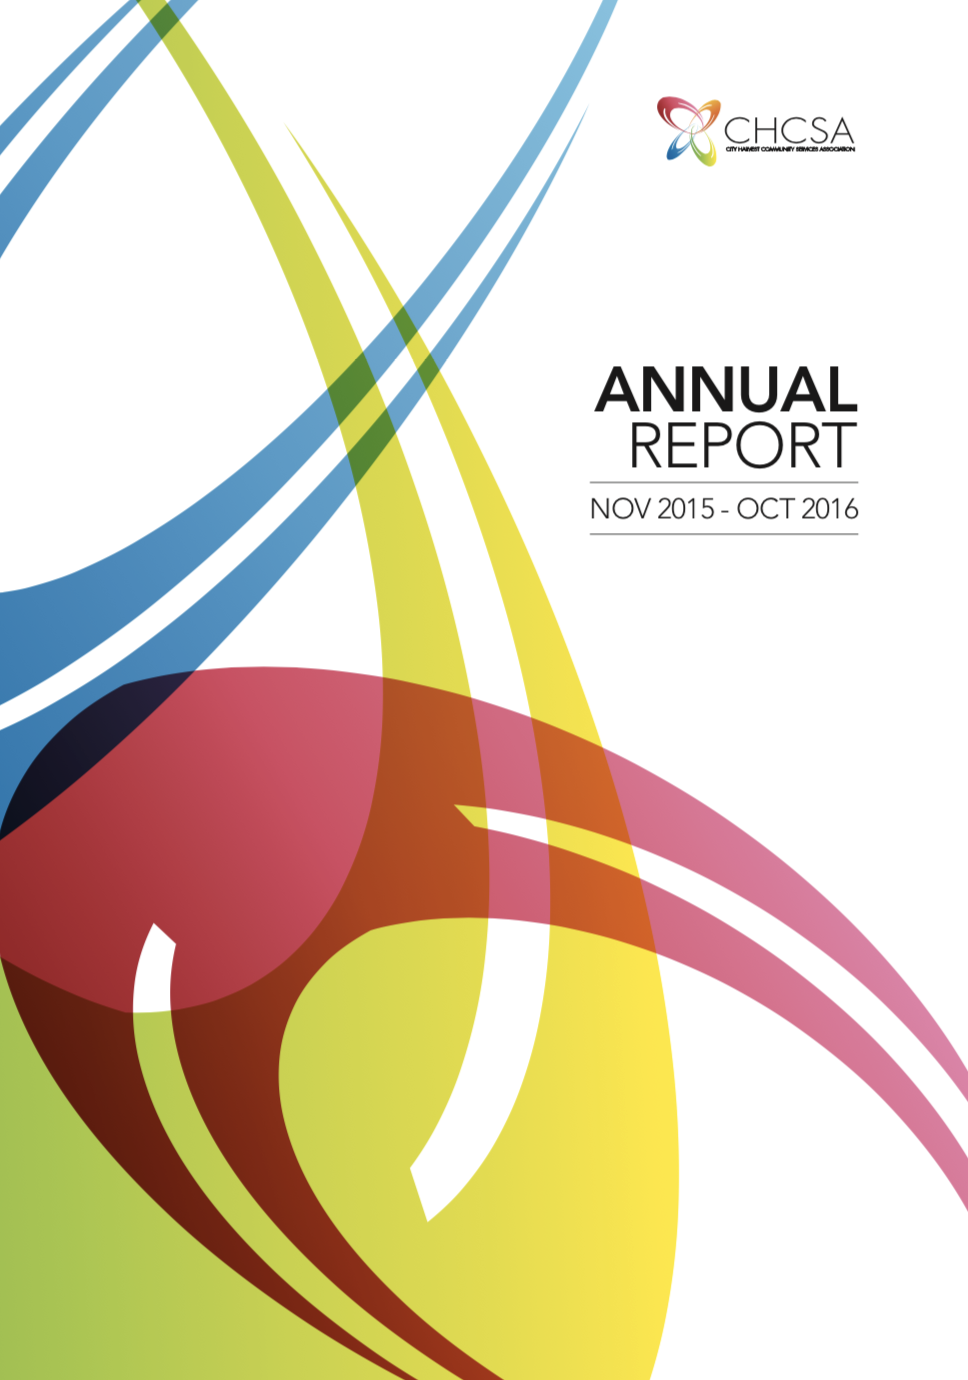 Annual Report FY 2015-2016